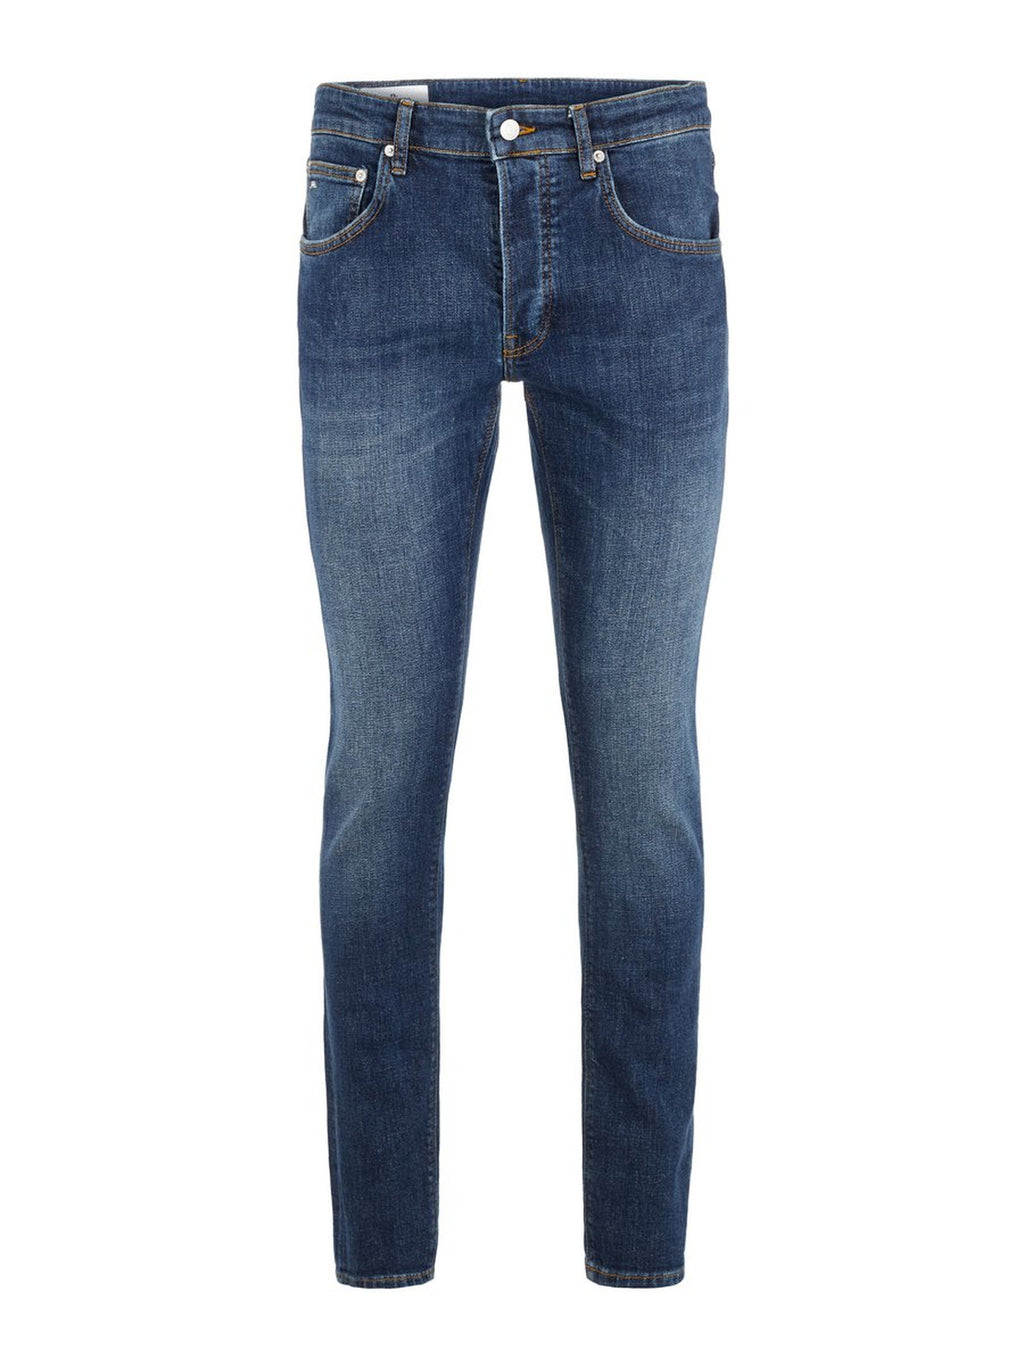 J. Lindeberg extra stretch men blue Cedar jeans